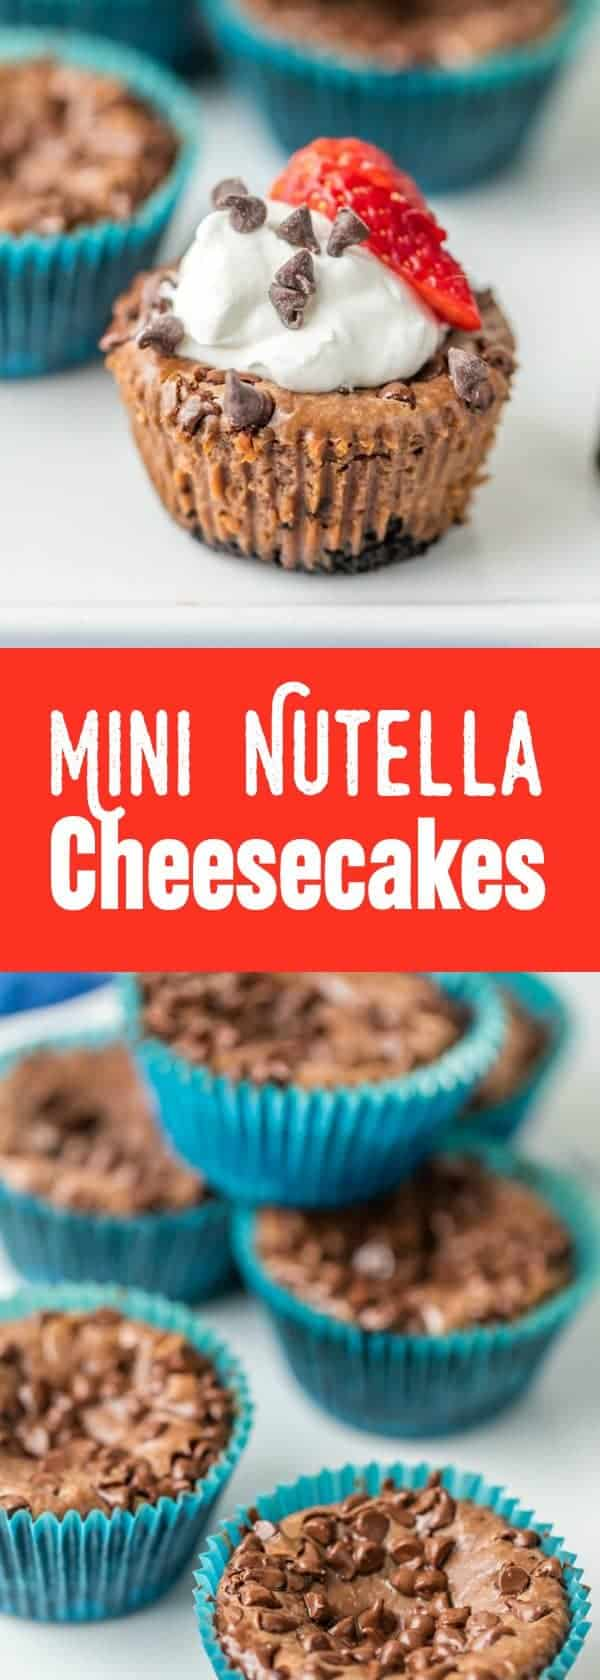 Mini Nutella Cheesecakes are the perfect easy dessert for any occasion. Top them with whipped cream and fresh berries for a swoon-worthy dessert!